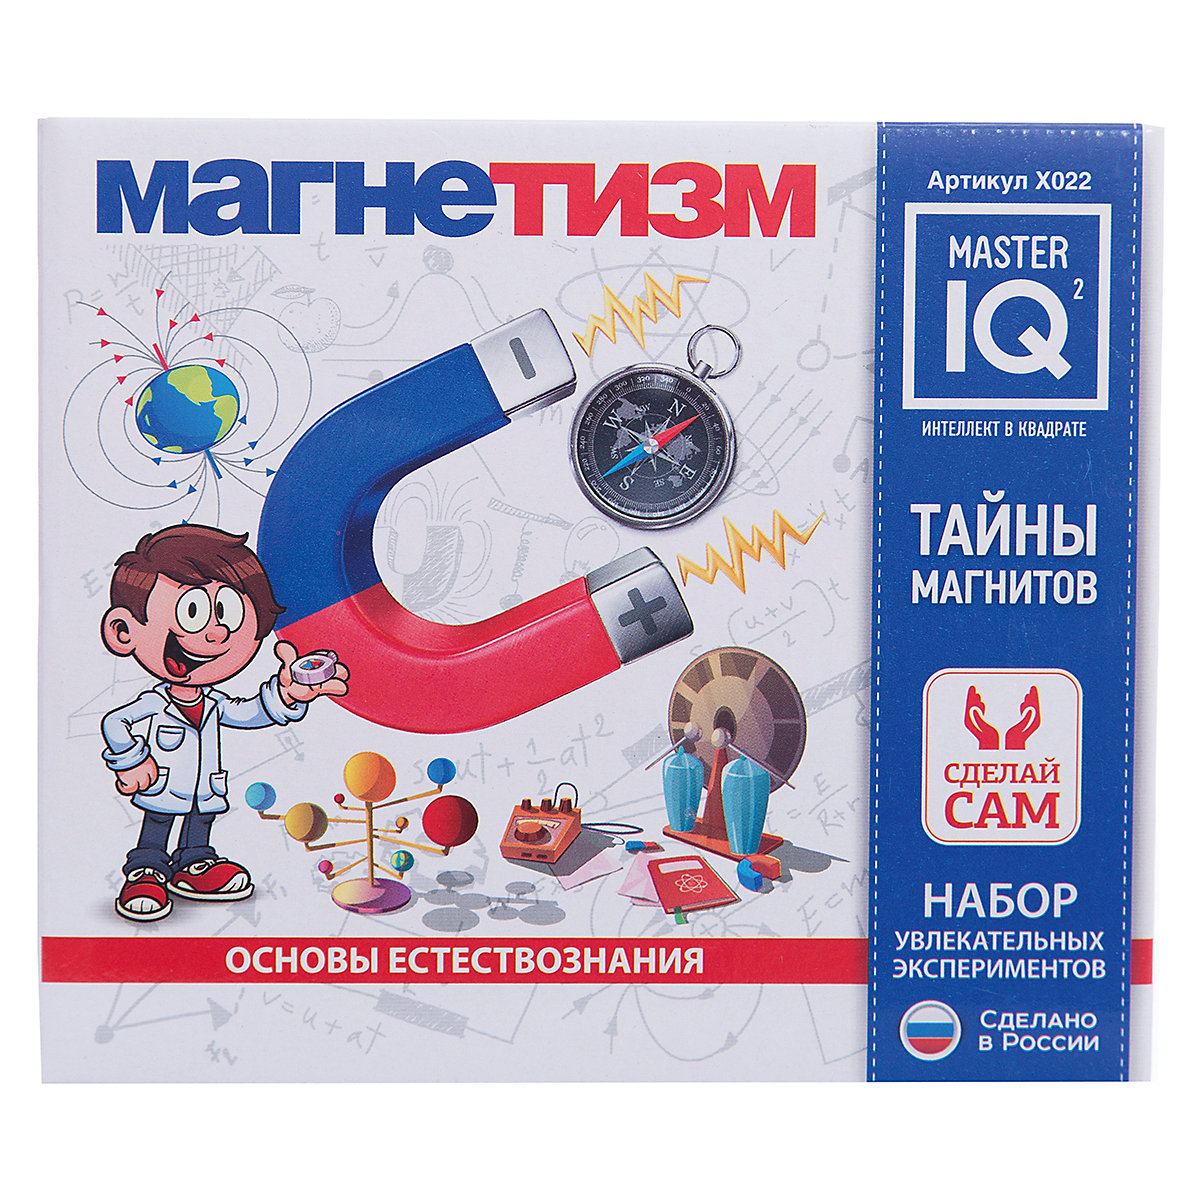 MASTER IQ2 Science 5083889 s experiments for children  technology toy play game girl boy MTpromo цены